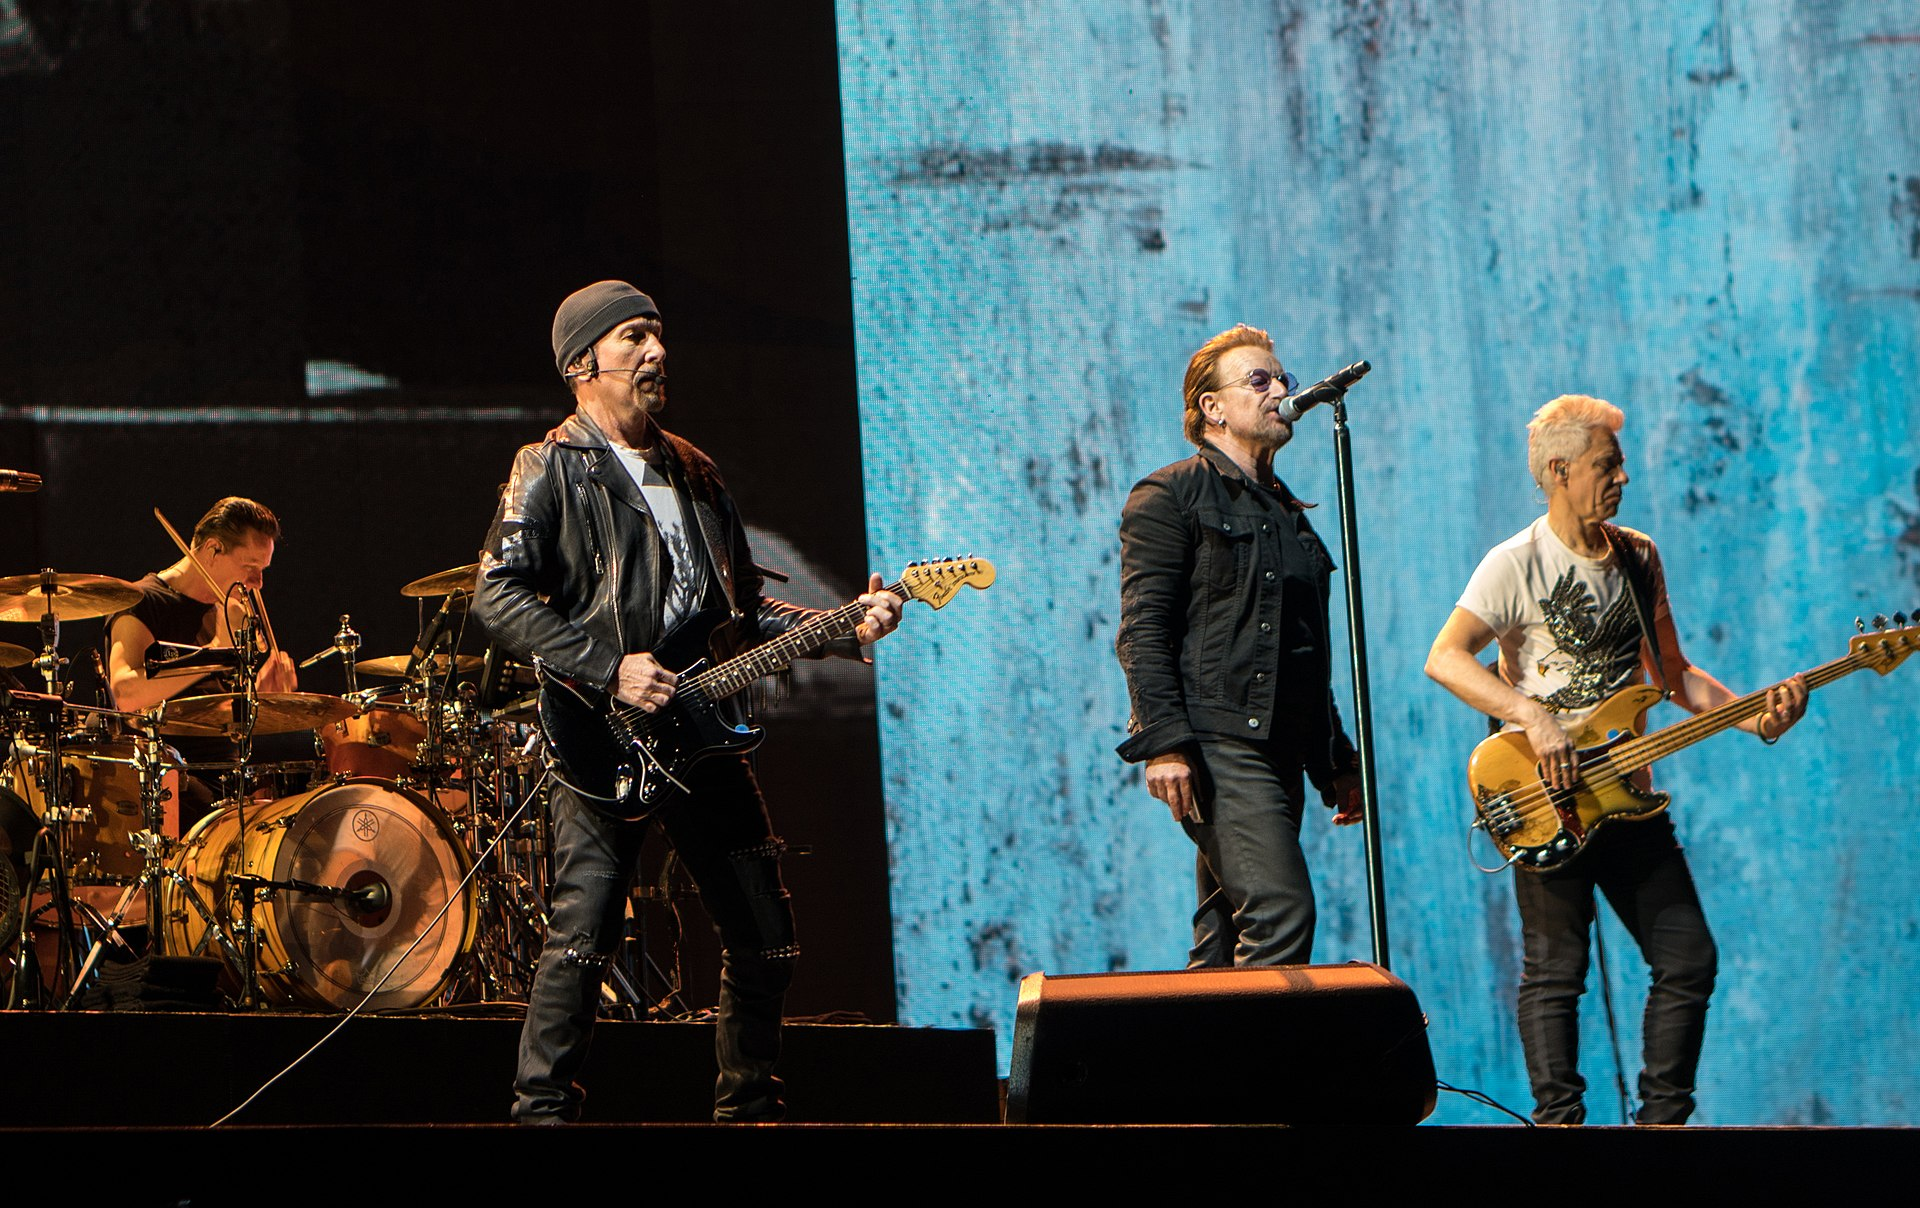 The band onstage